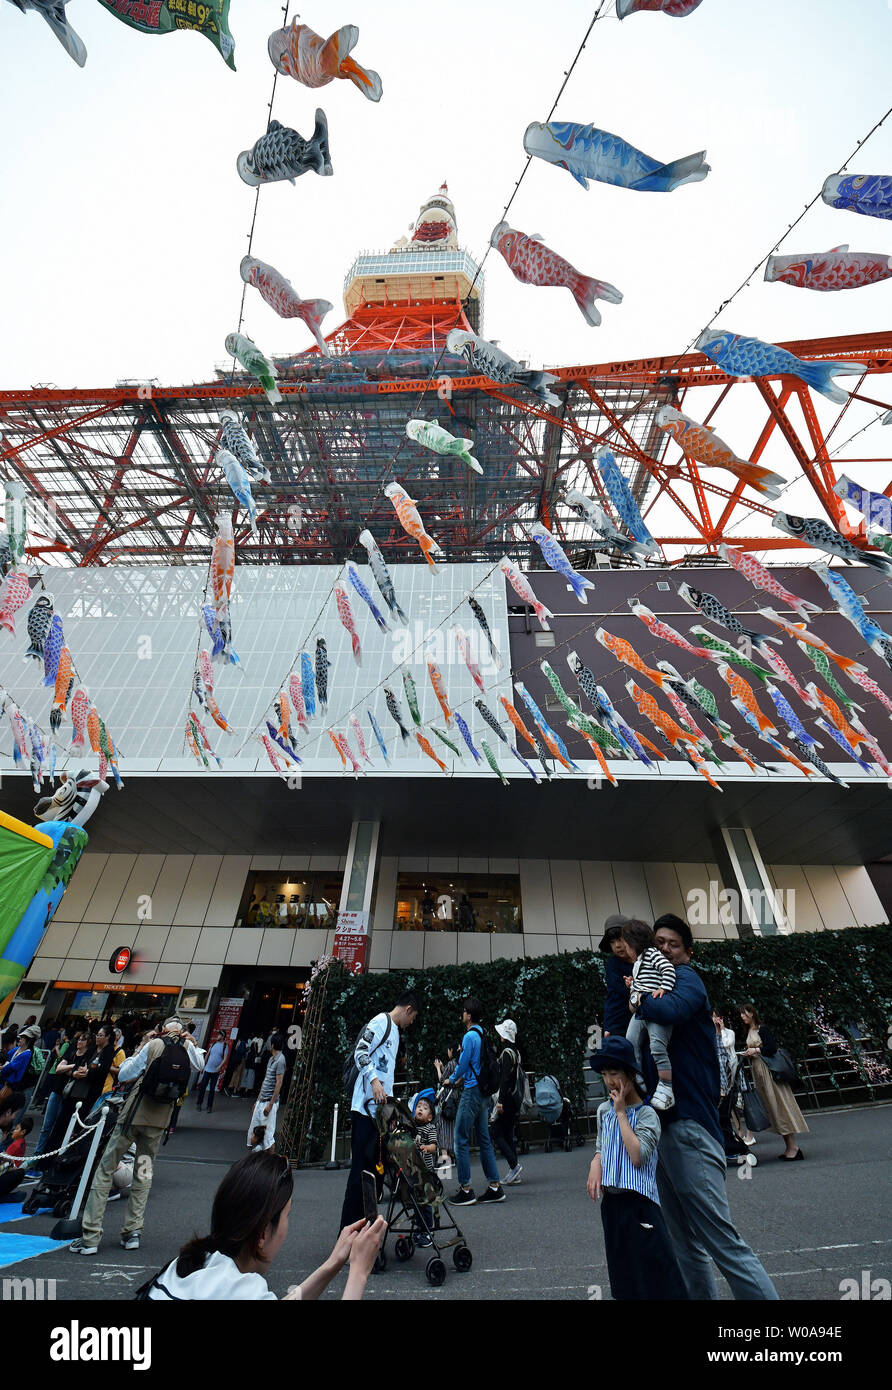 333 colorful Carp streamer are displayed, named after the